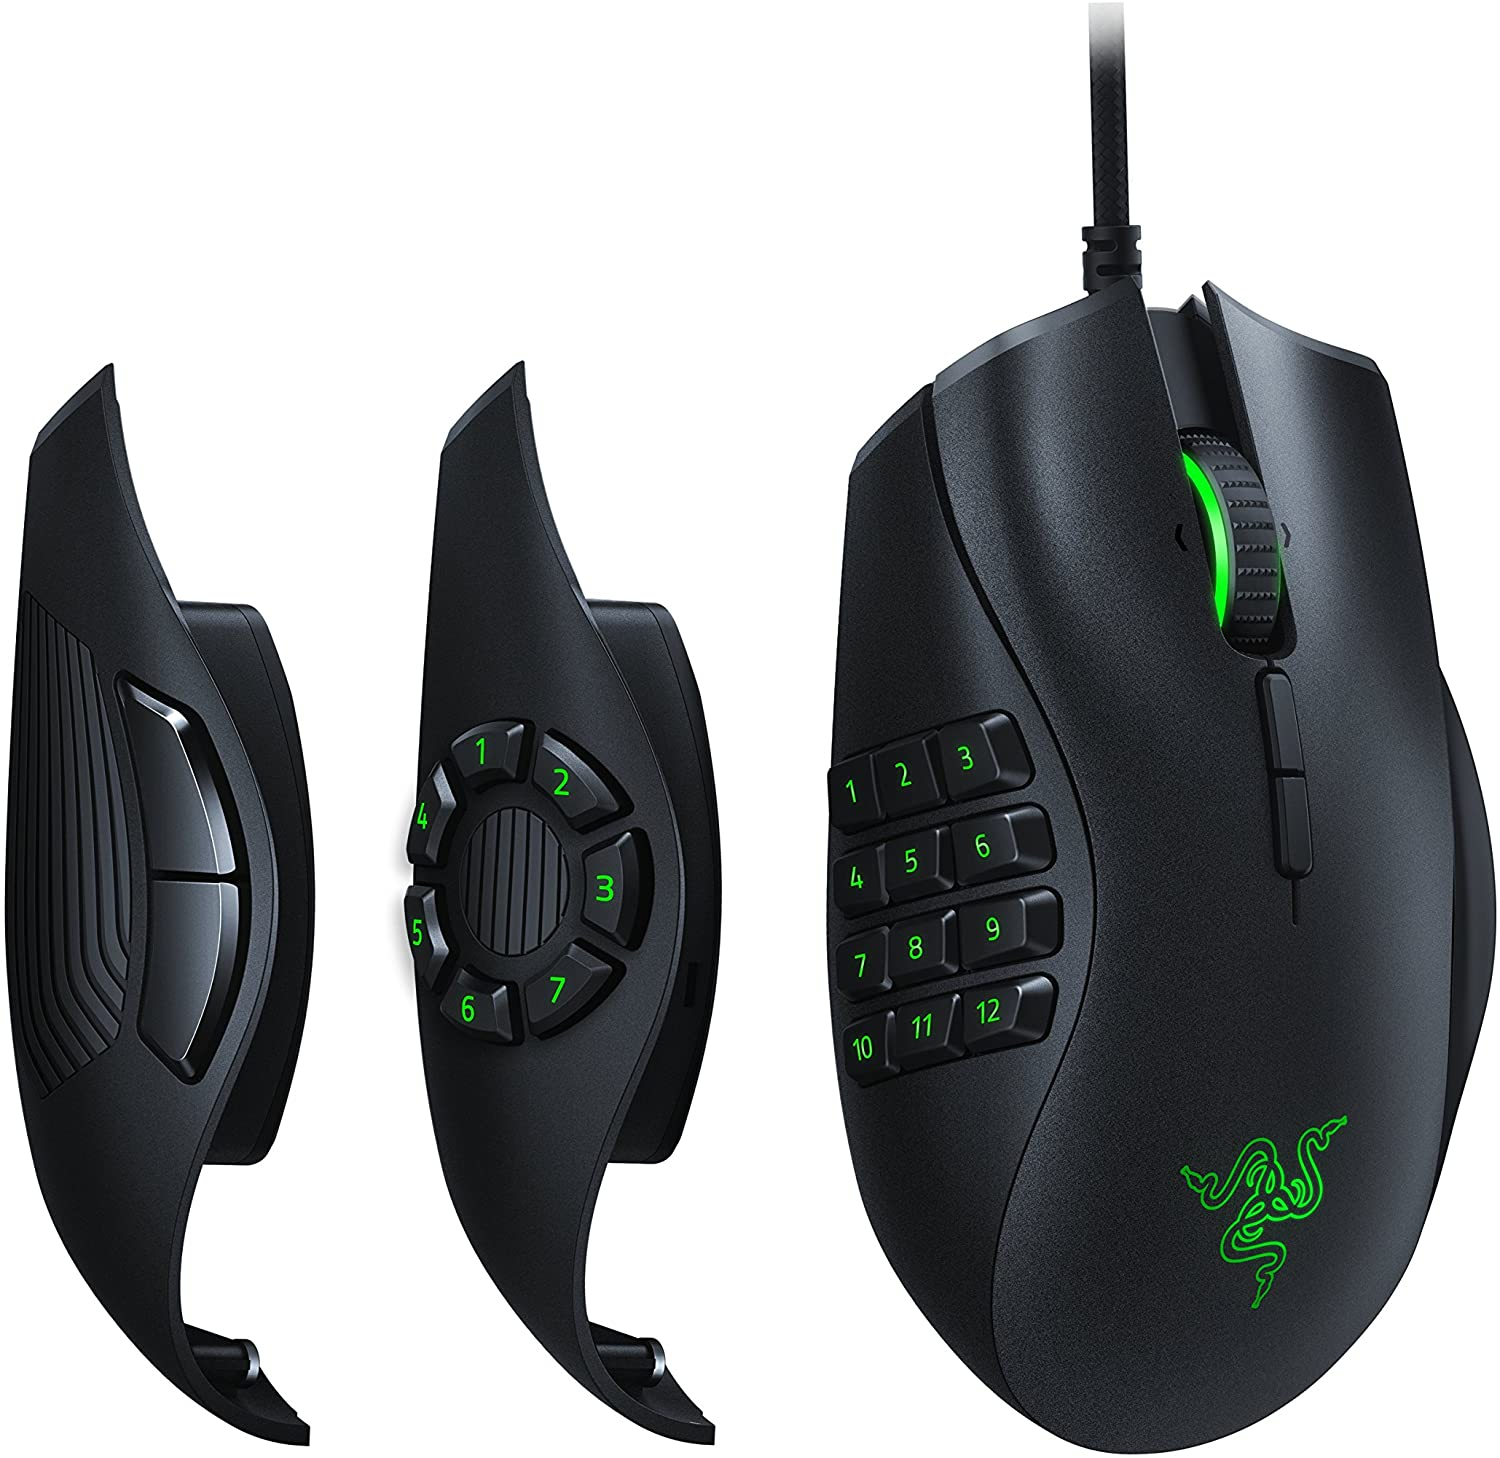 8 Best Left Handed Gaming Mouse - 2021 Buying Guide 6